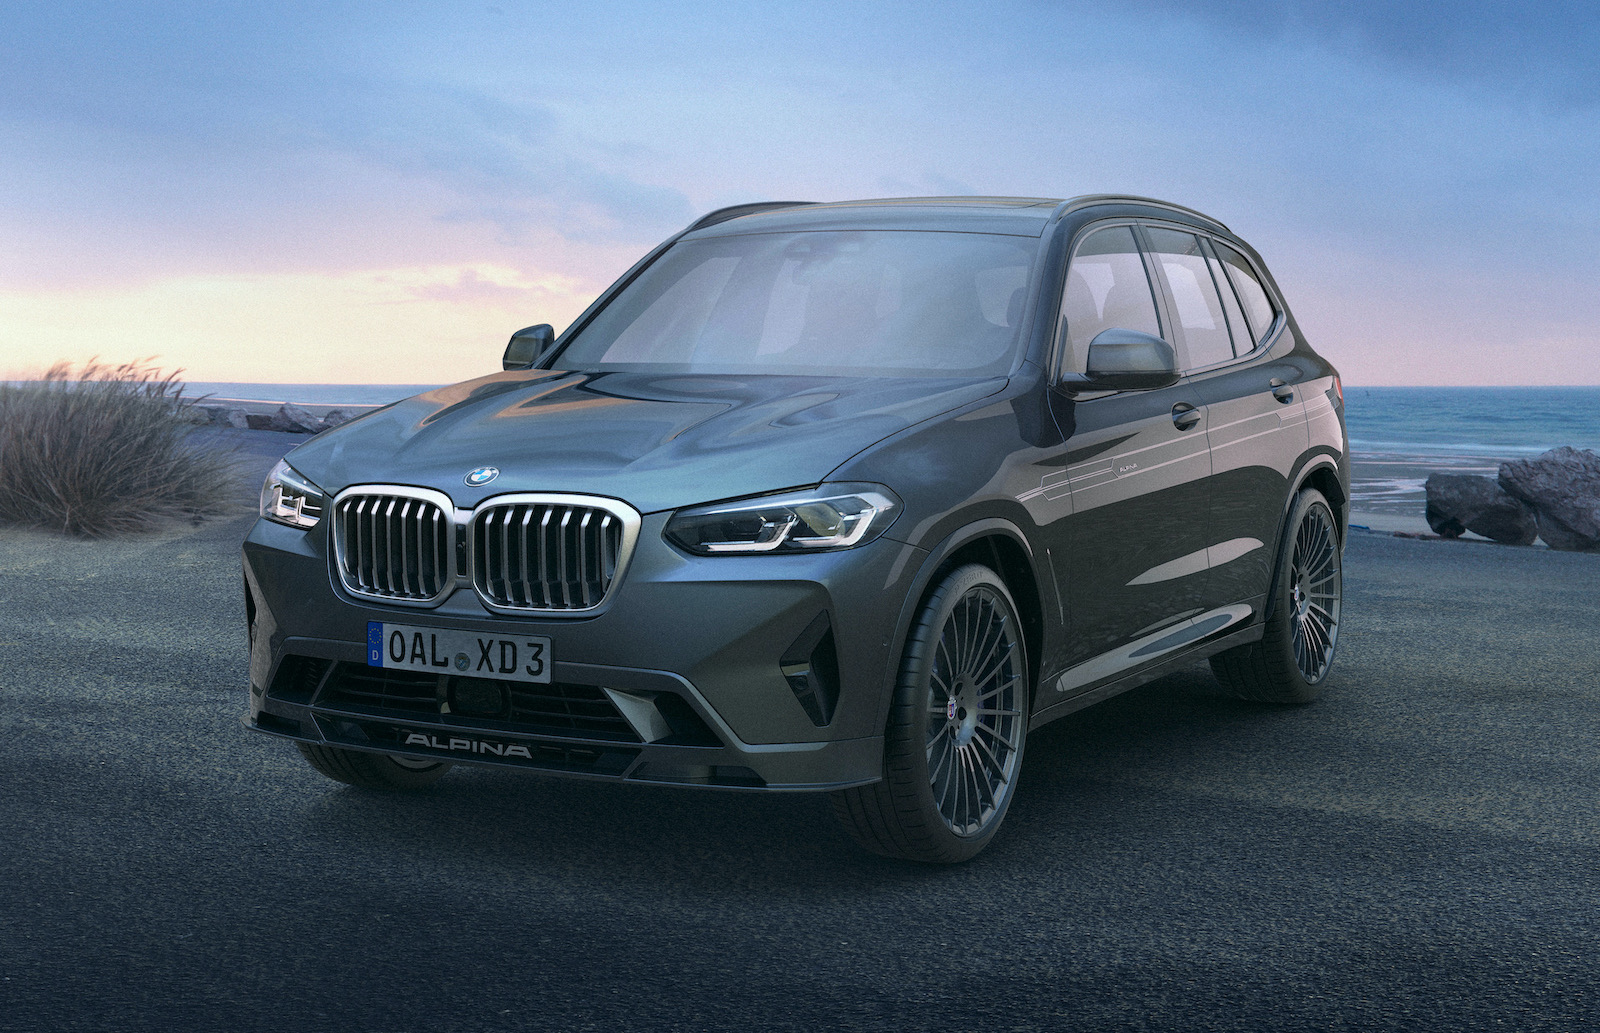 2022 Alpina XD3 revealed with 730Nm diesel, confirmed for Australia